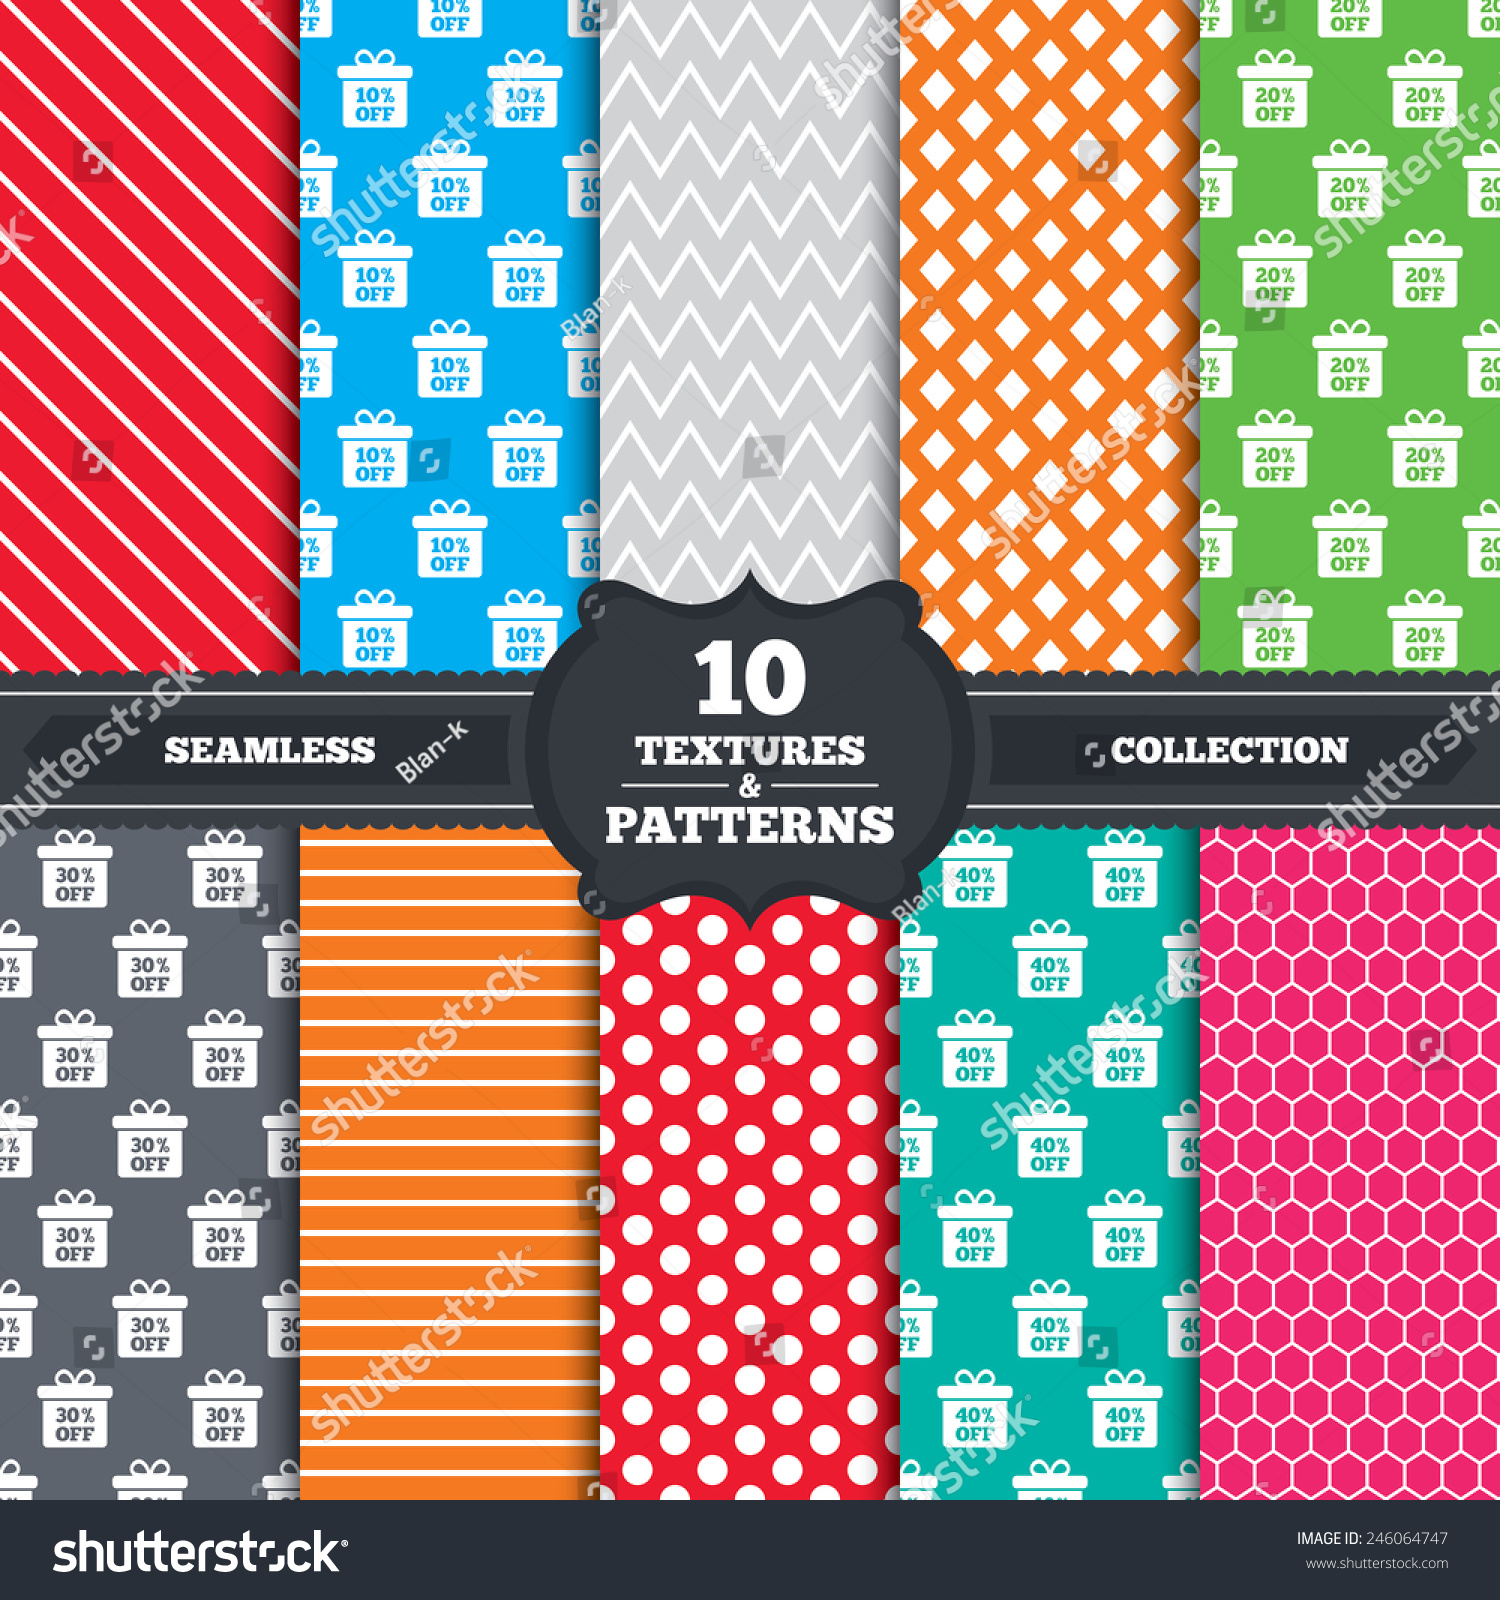 Seamless patterns textures sale gift box stock vector 246064747 seamless patterns and textures sale gift box tag icons discount special offer symbols biocorpaavc Choice Image